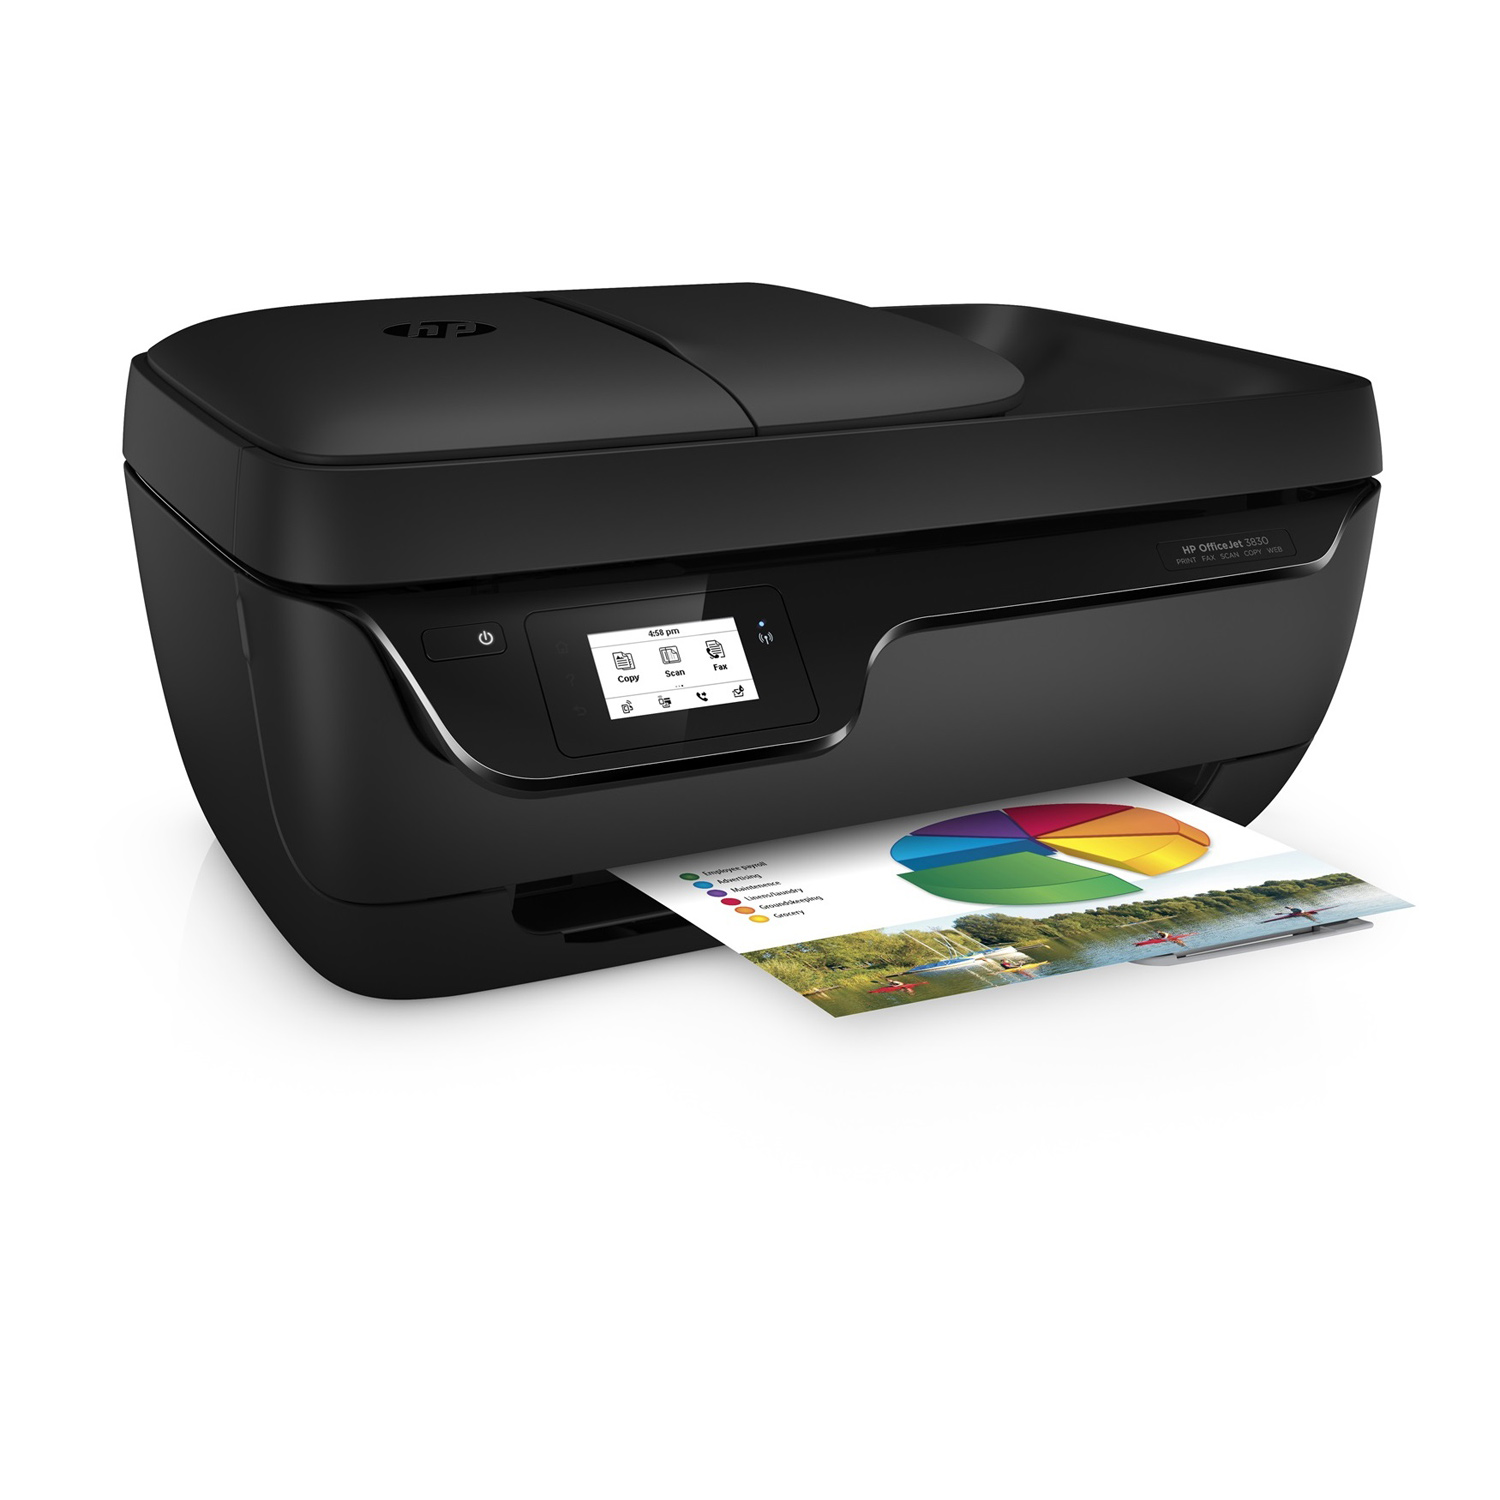 hp officejet 3833 f5s03b baw achat vente imprimante. Black Bedroom Furniture Sets. Home Design Ideas